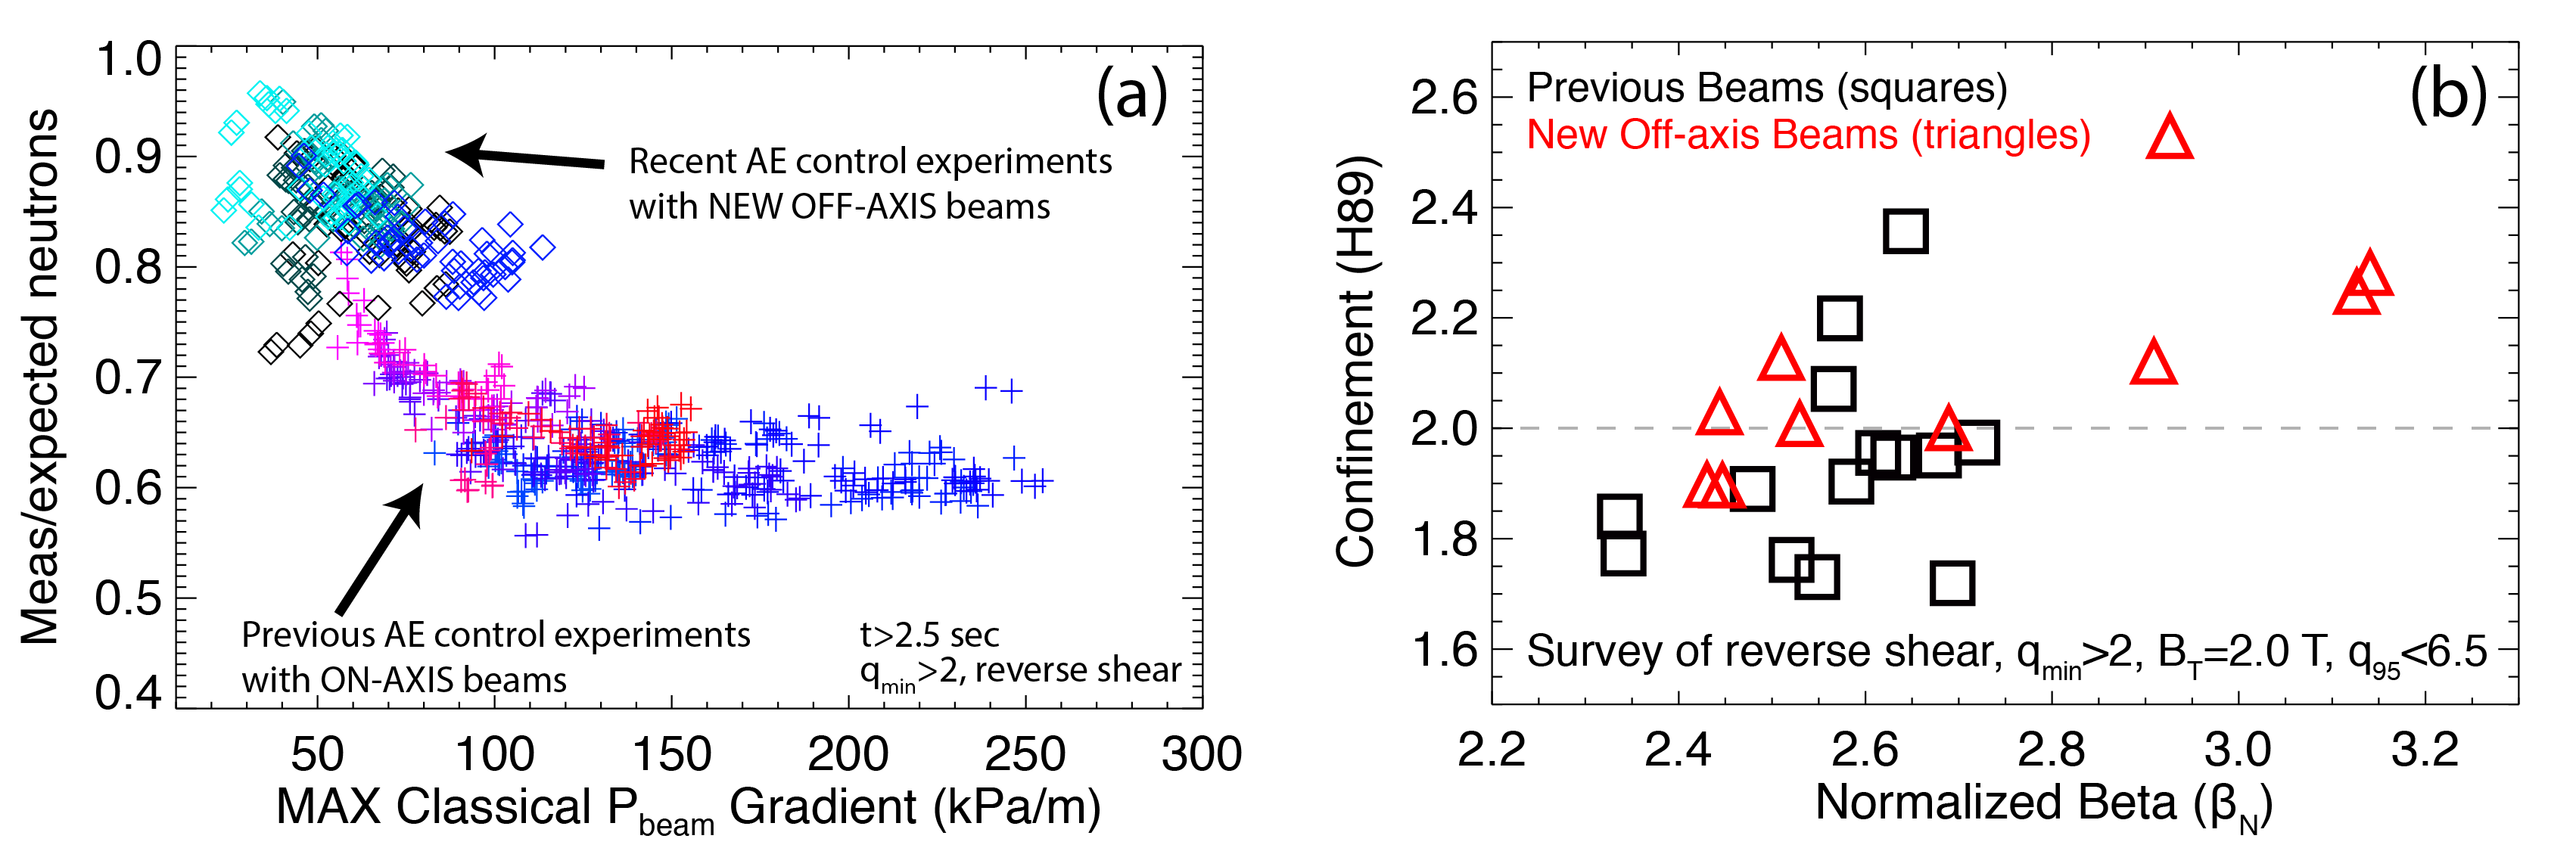 $B_T=2.0~T$, $q_{95}=6.0$, high-qmin SS discharges. (a) A variety of AE control methods show improved neutron ratio vs. beam pressure gradient, with <30% off-axis beam power (multi-colored crosses), and >70% off-axis beam power (diamonds). (b) Survey of all DIII-D high-qmin experiments shows that recent experiments (triangles) enabled significant improvement in $\beta_N$.